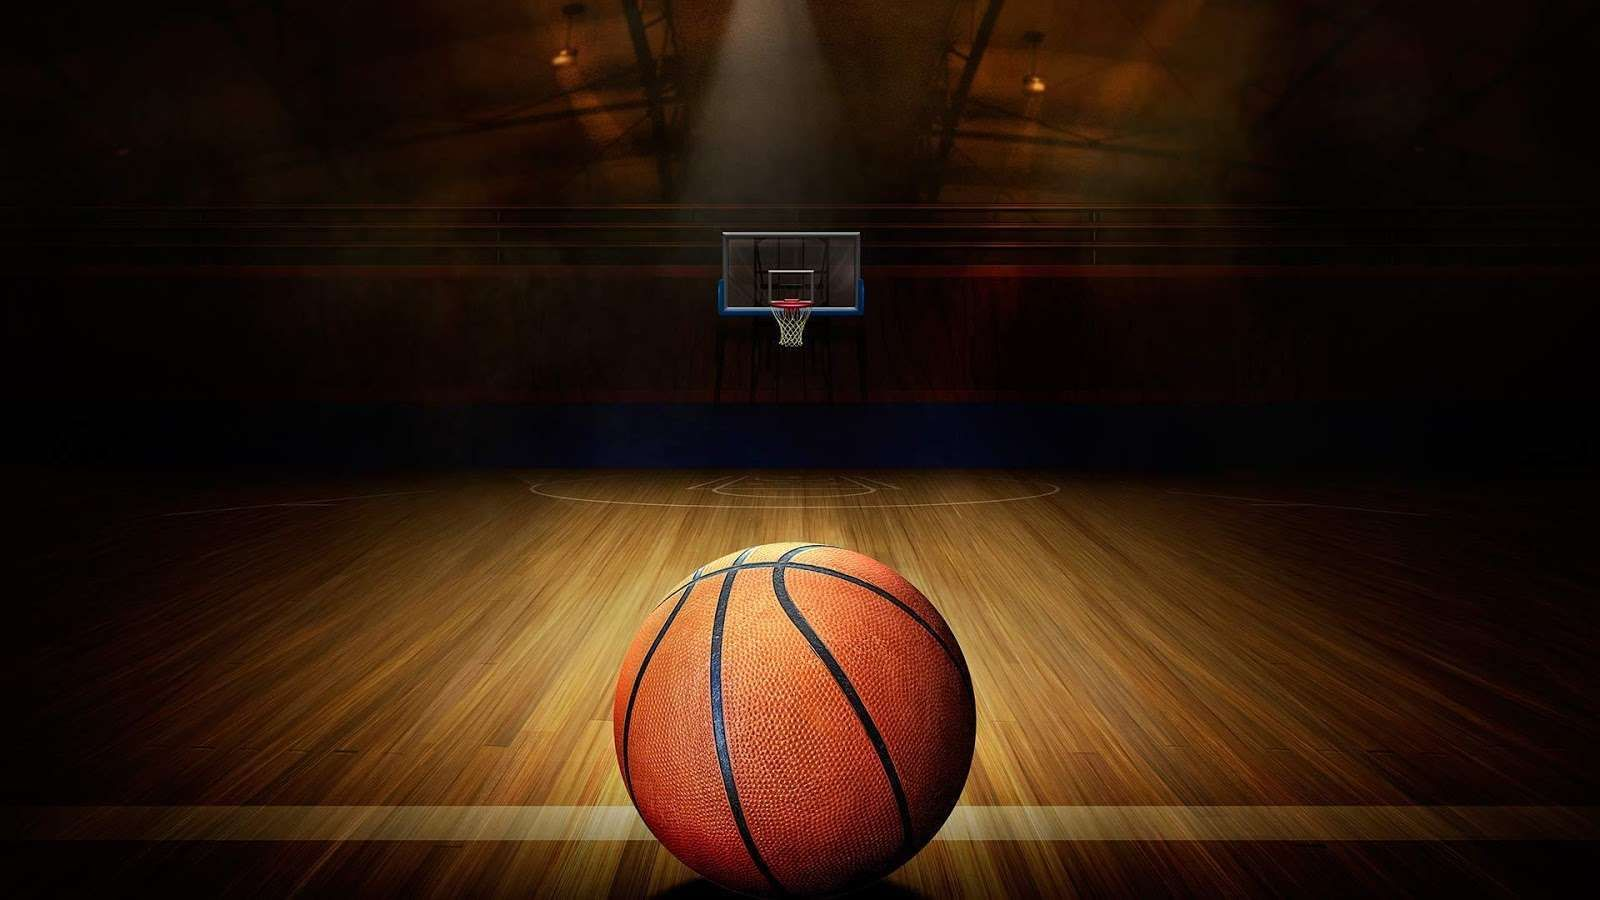 undefined basketball wallpapers download 44 wallpapers